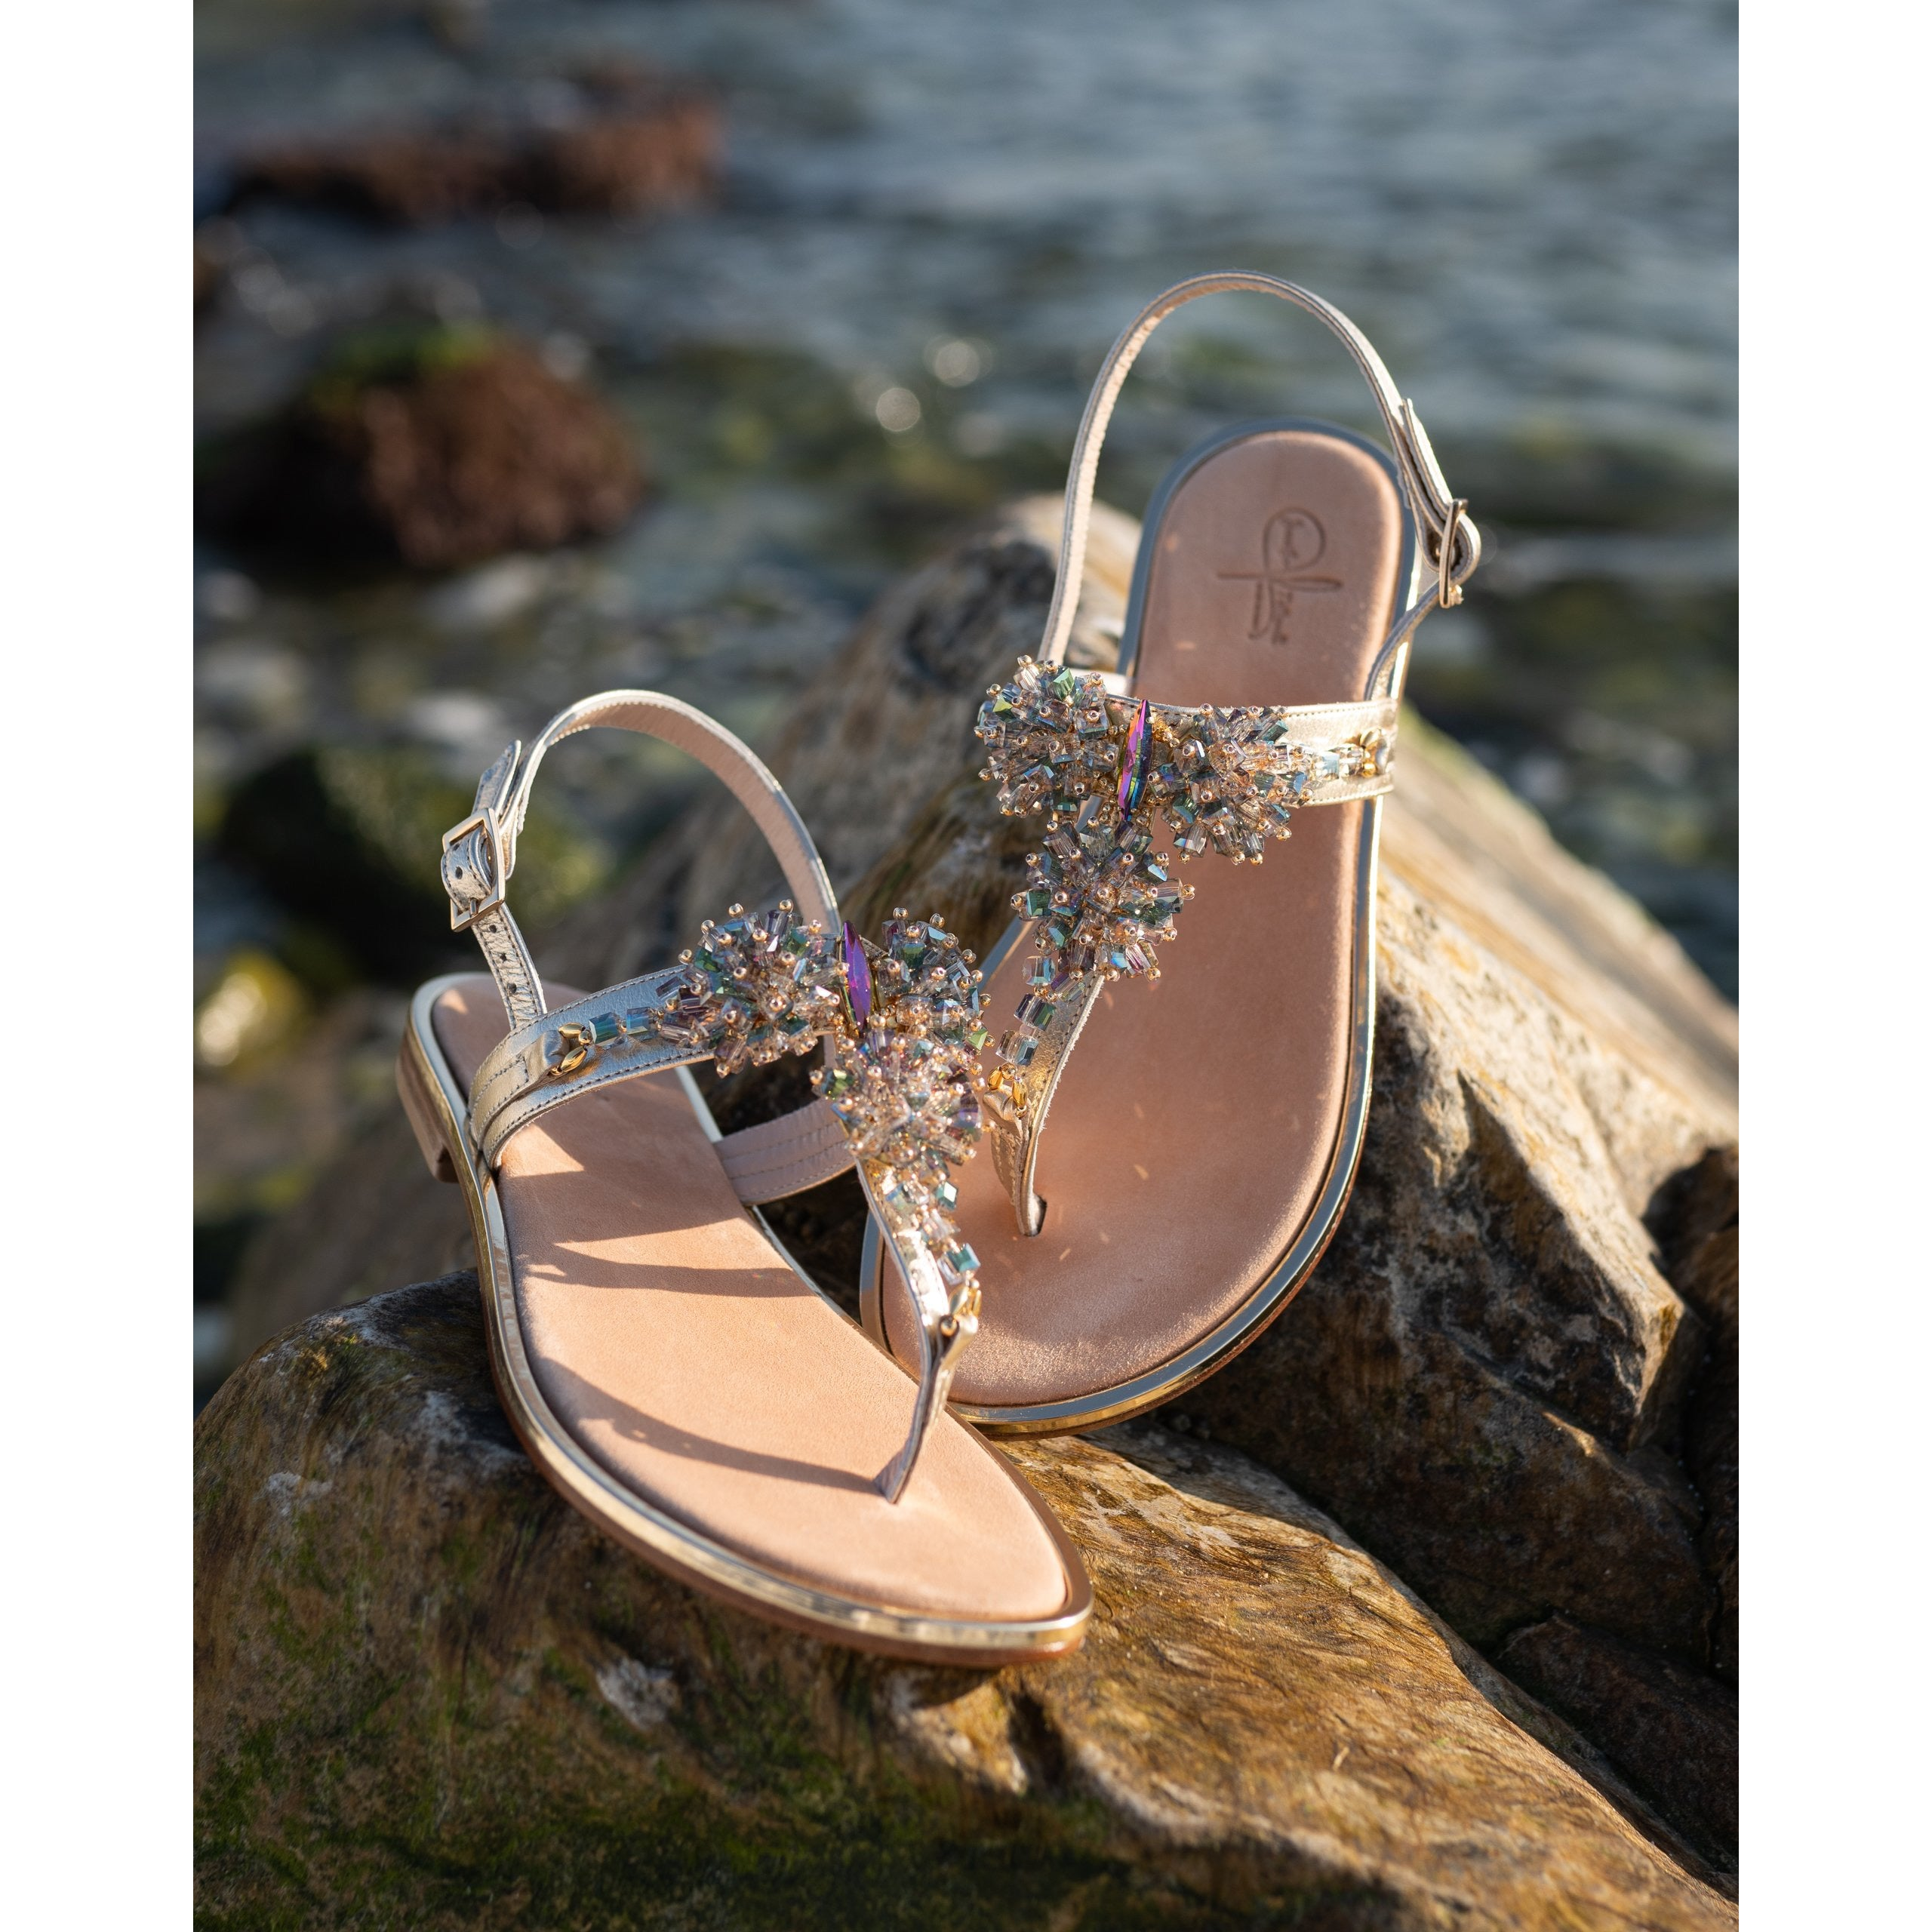 MPOWC6420 T10 Women Sandals - New Spring Summer 2020 Collection